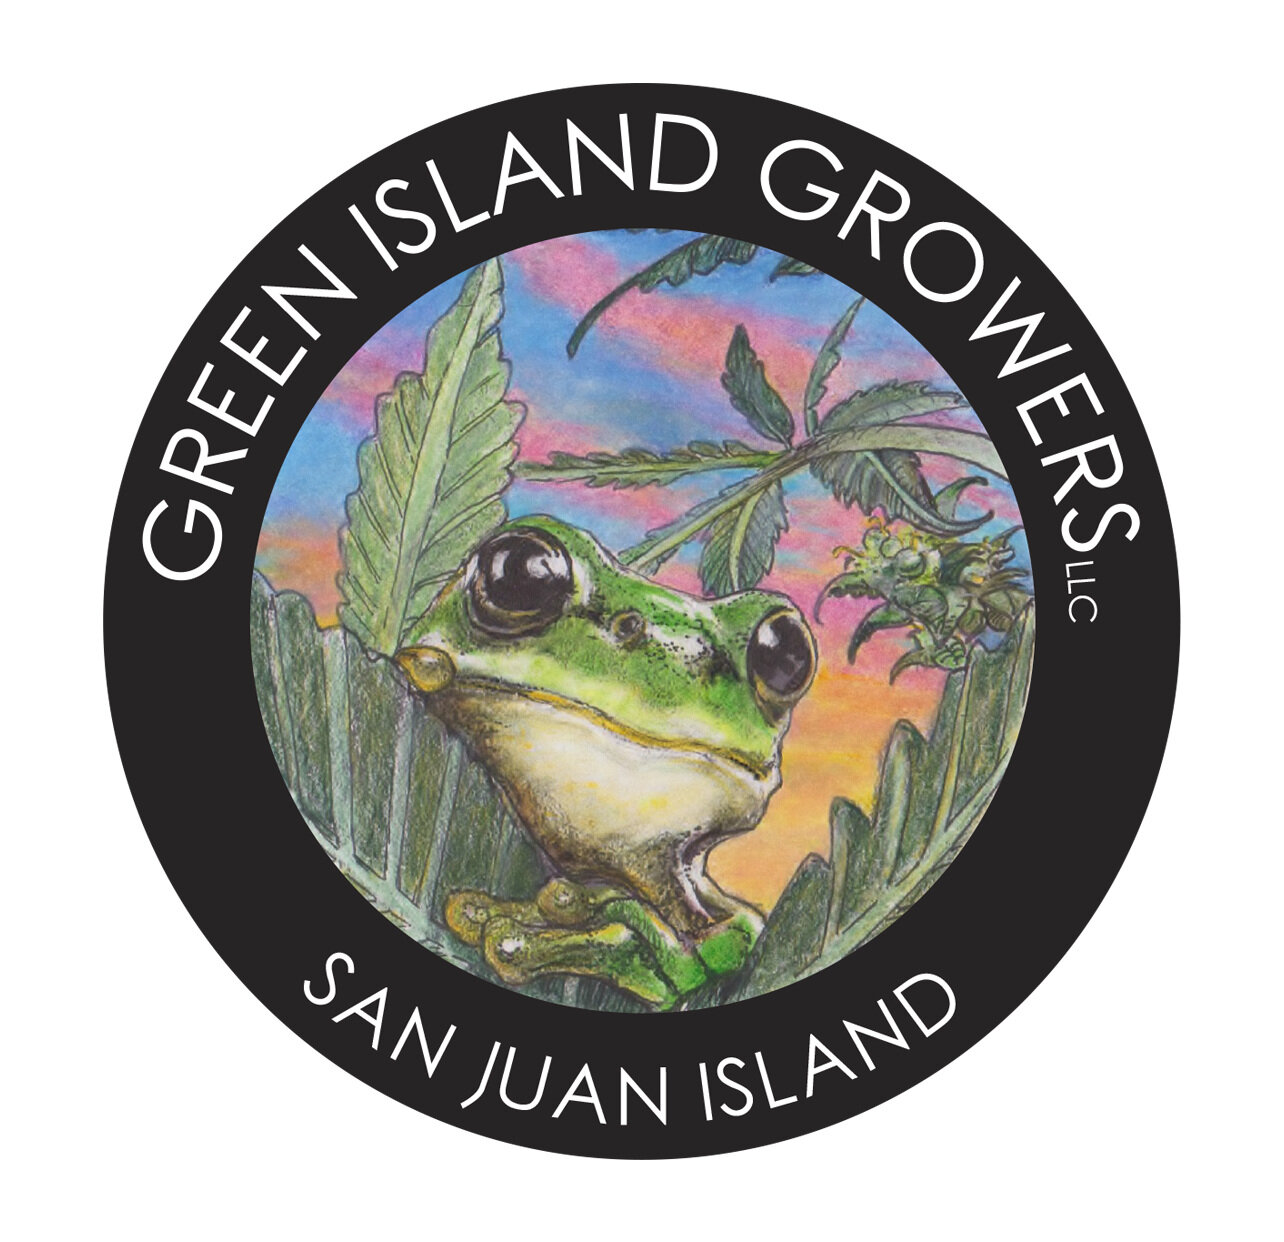 Green Island Growers